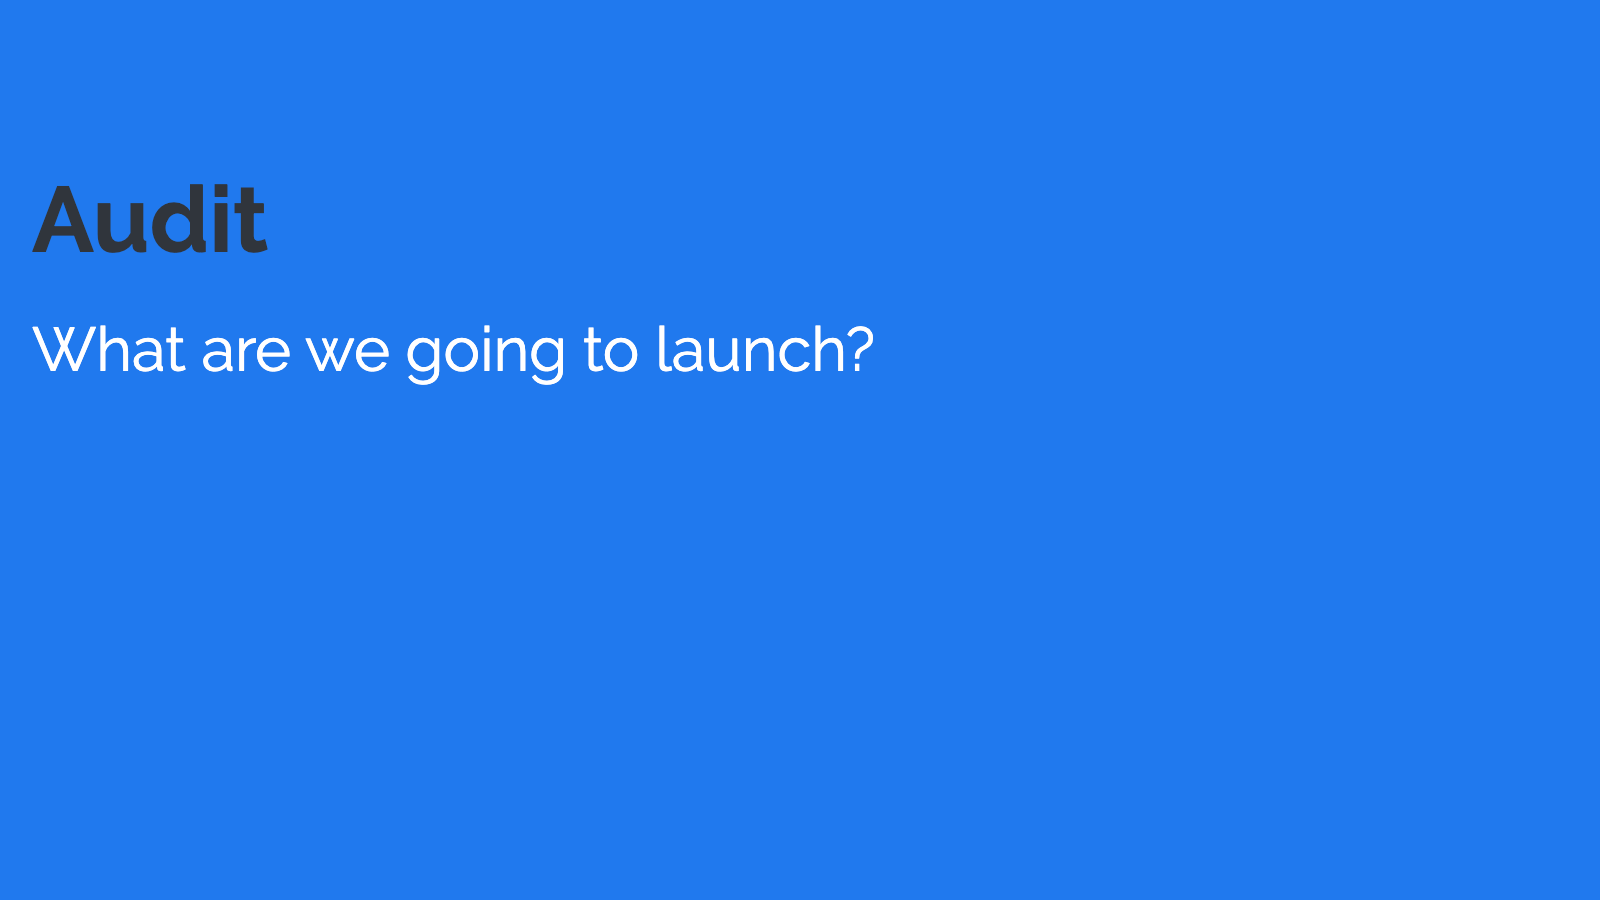 Slide content, Audit: What are we going to launch?